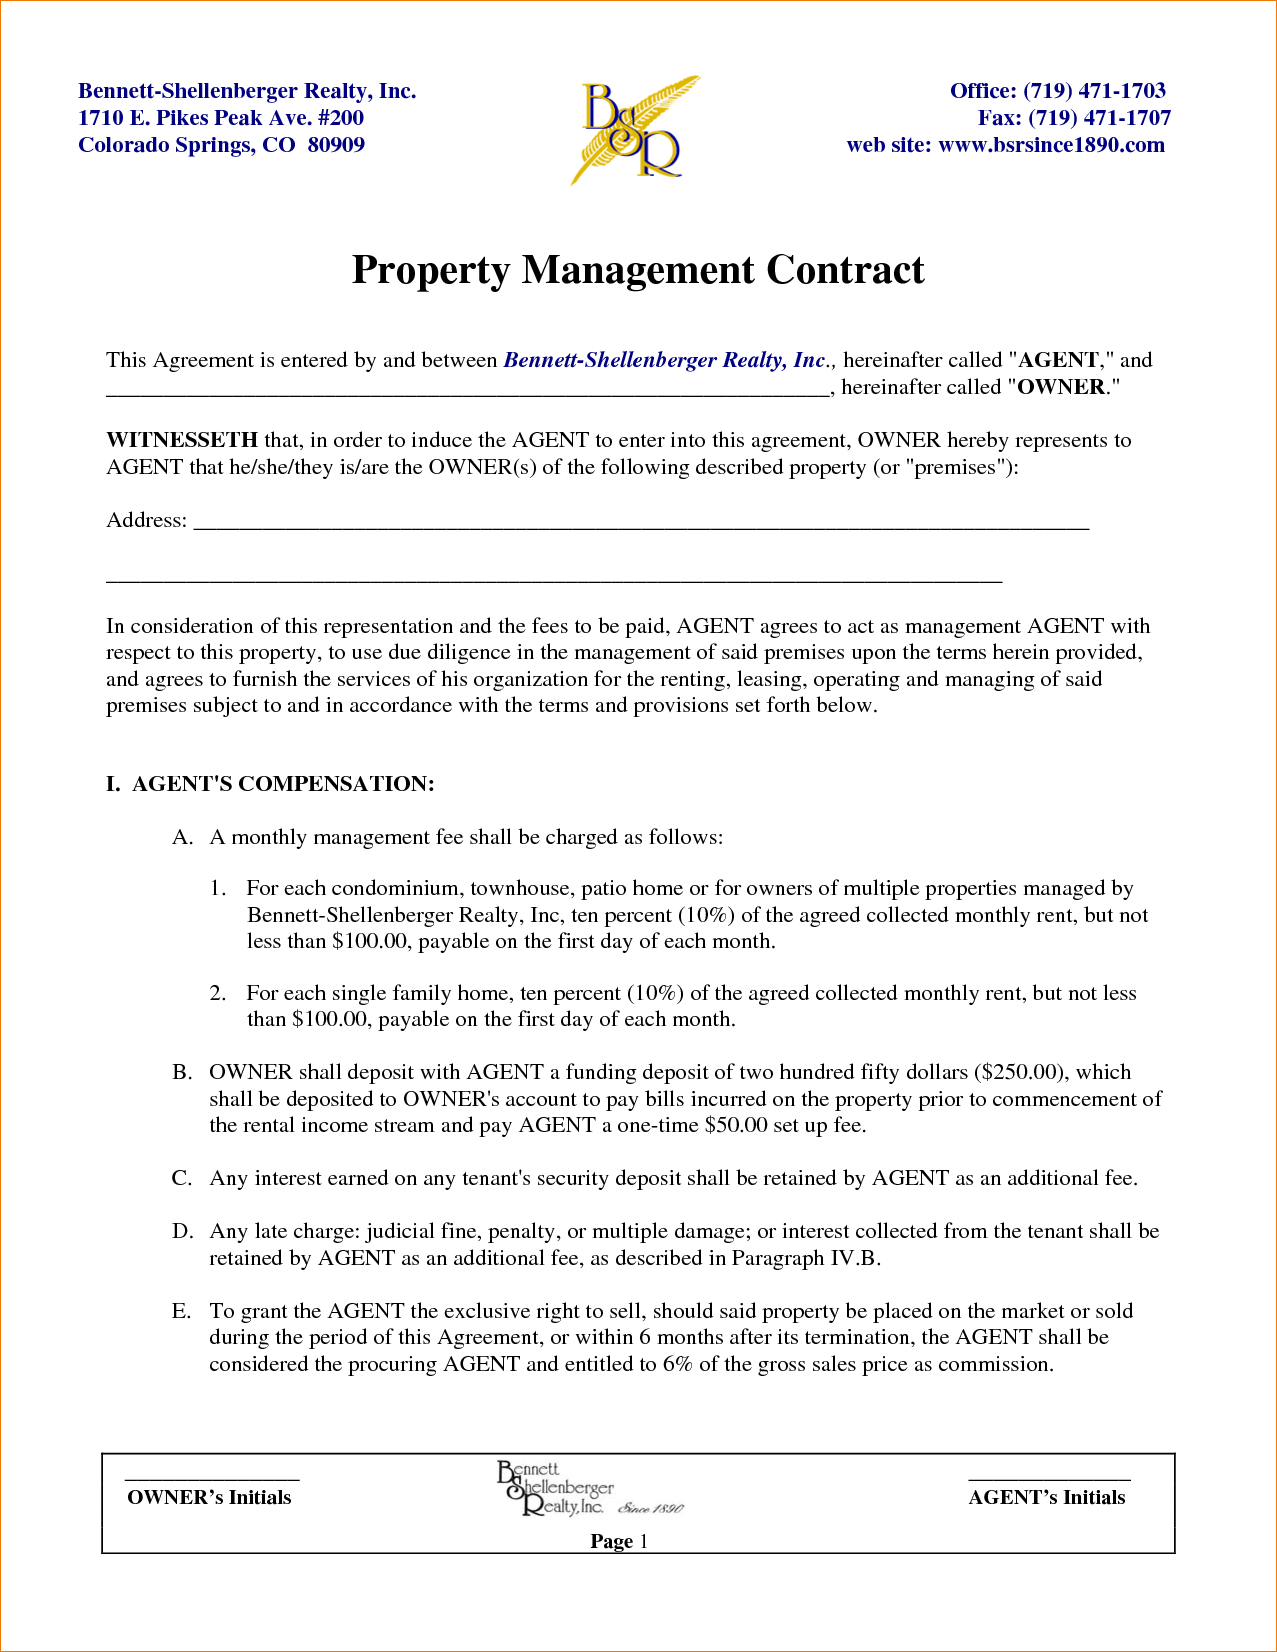 Property management contract template facile furthermore by